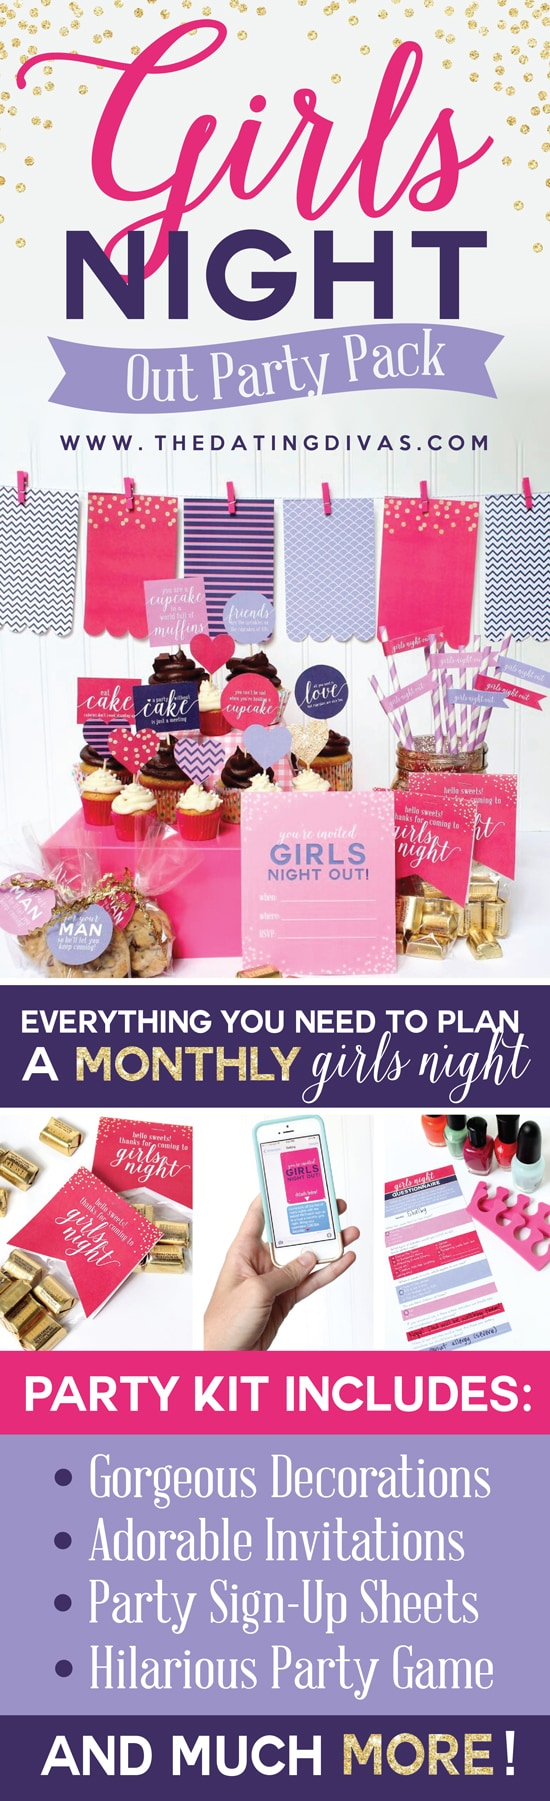 Girls Night Out Party